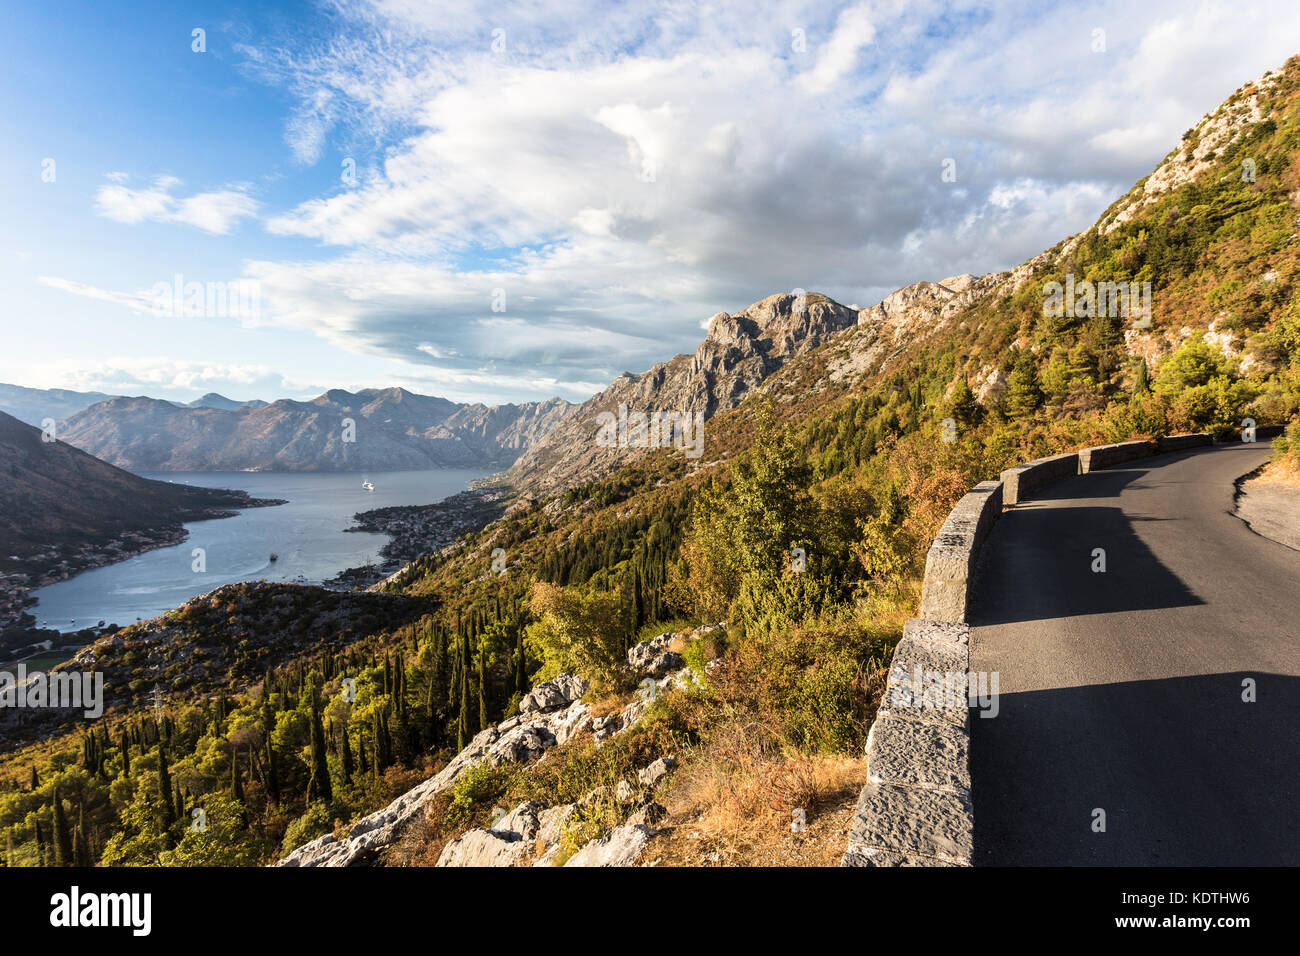 Mountain road above the Kotor bay and old town in Montenegro in the Balkans, Southeastern Europe Stock Photo